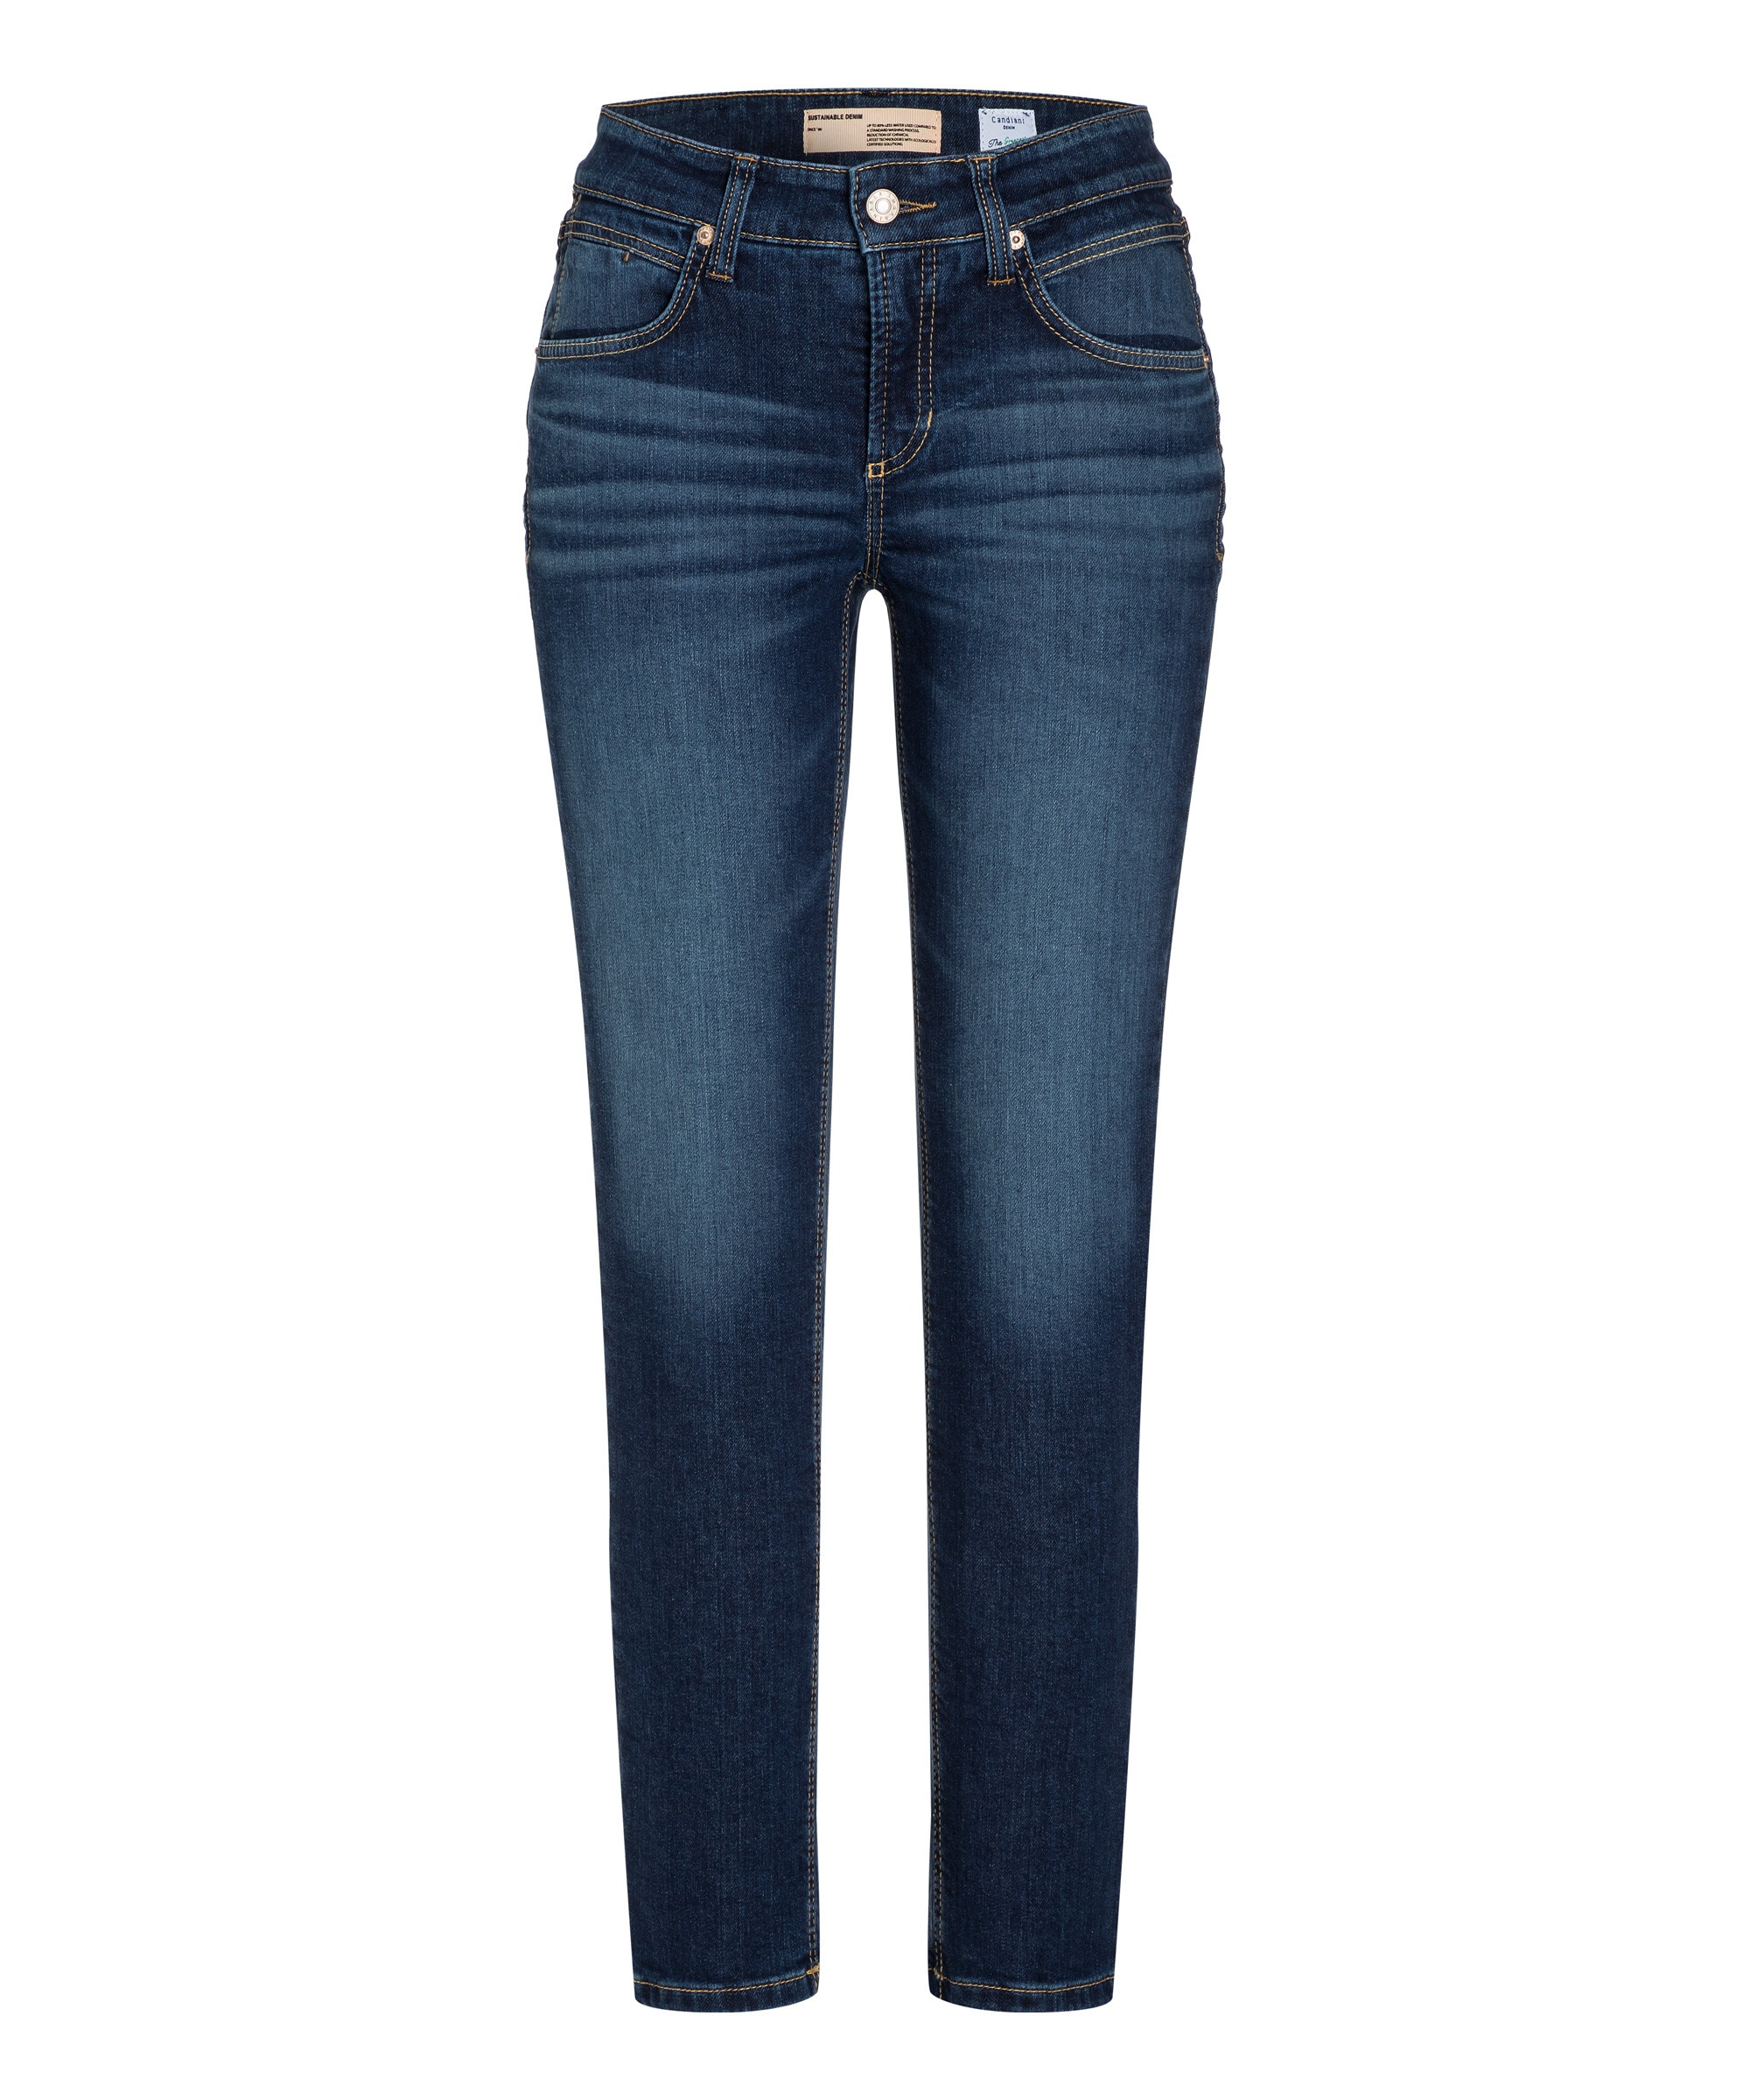 Cambio broek Pina sustainable comfort stretch blue denim